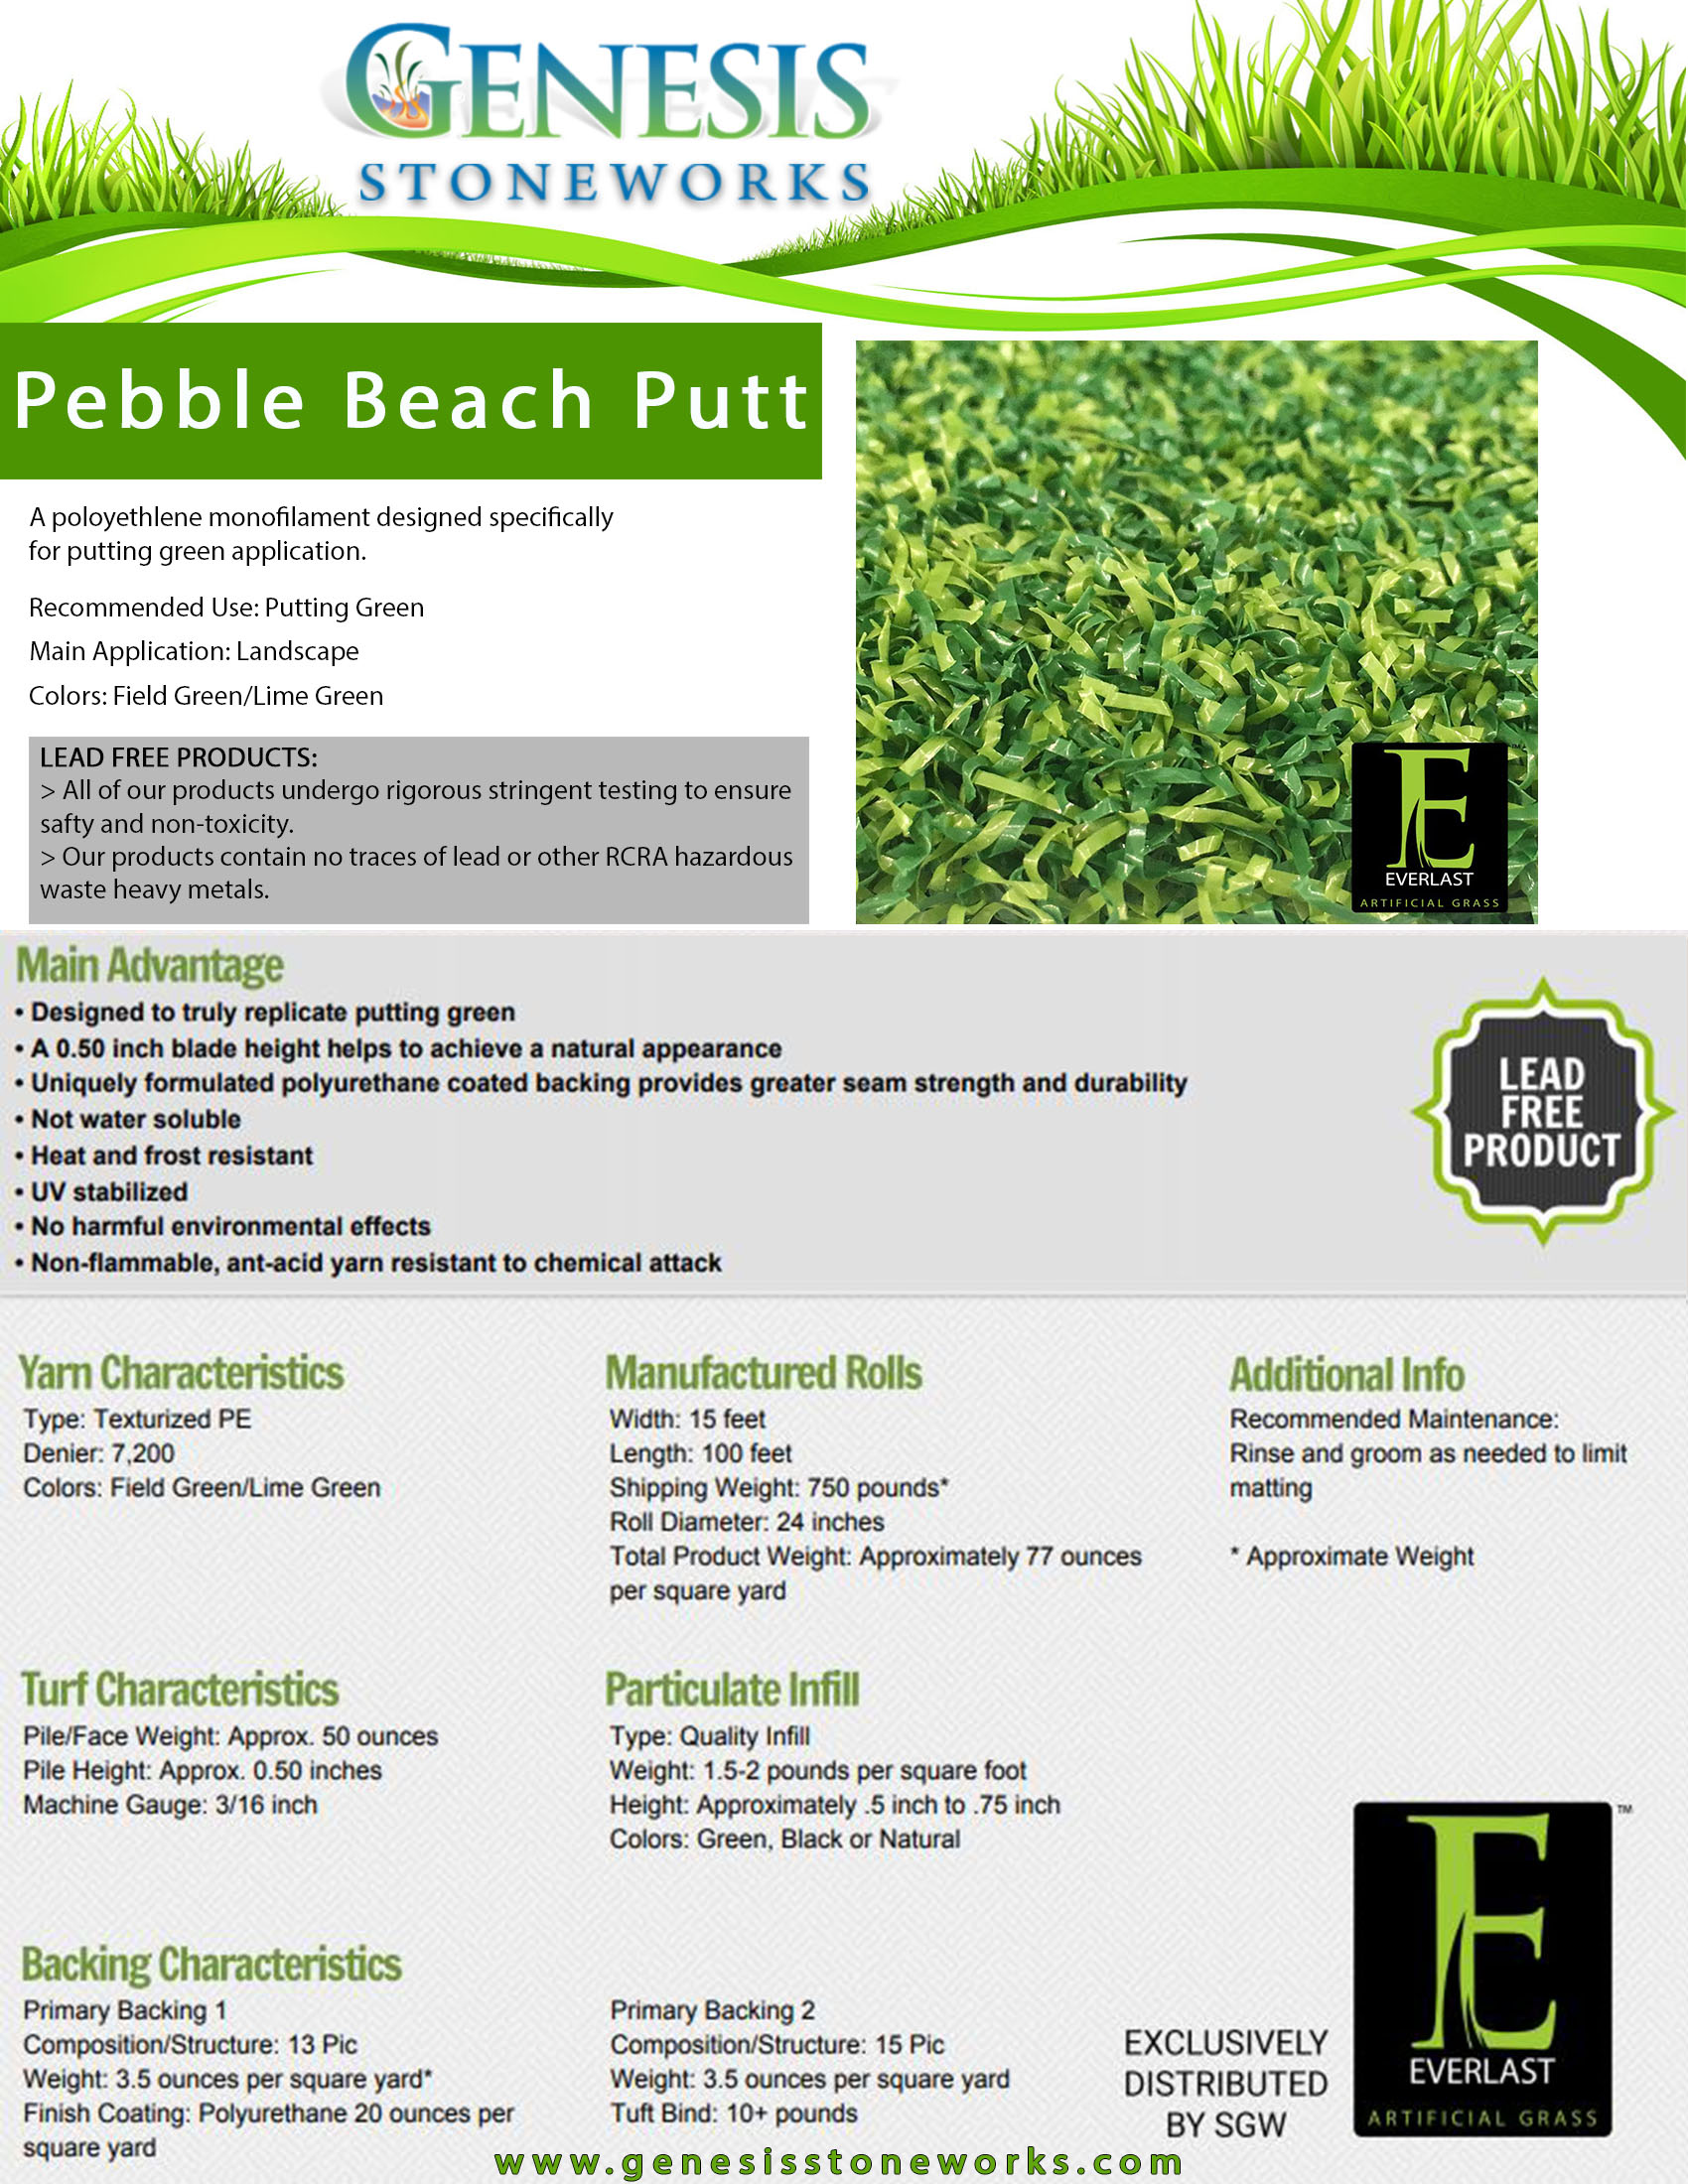 Pebble_Beach_Putt_SpecSheets